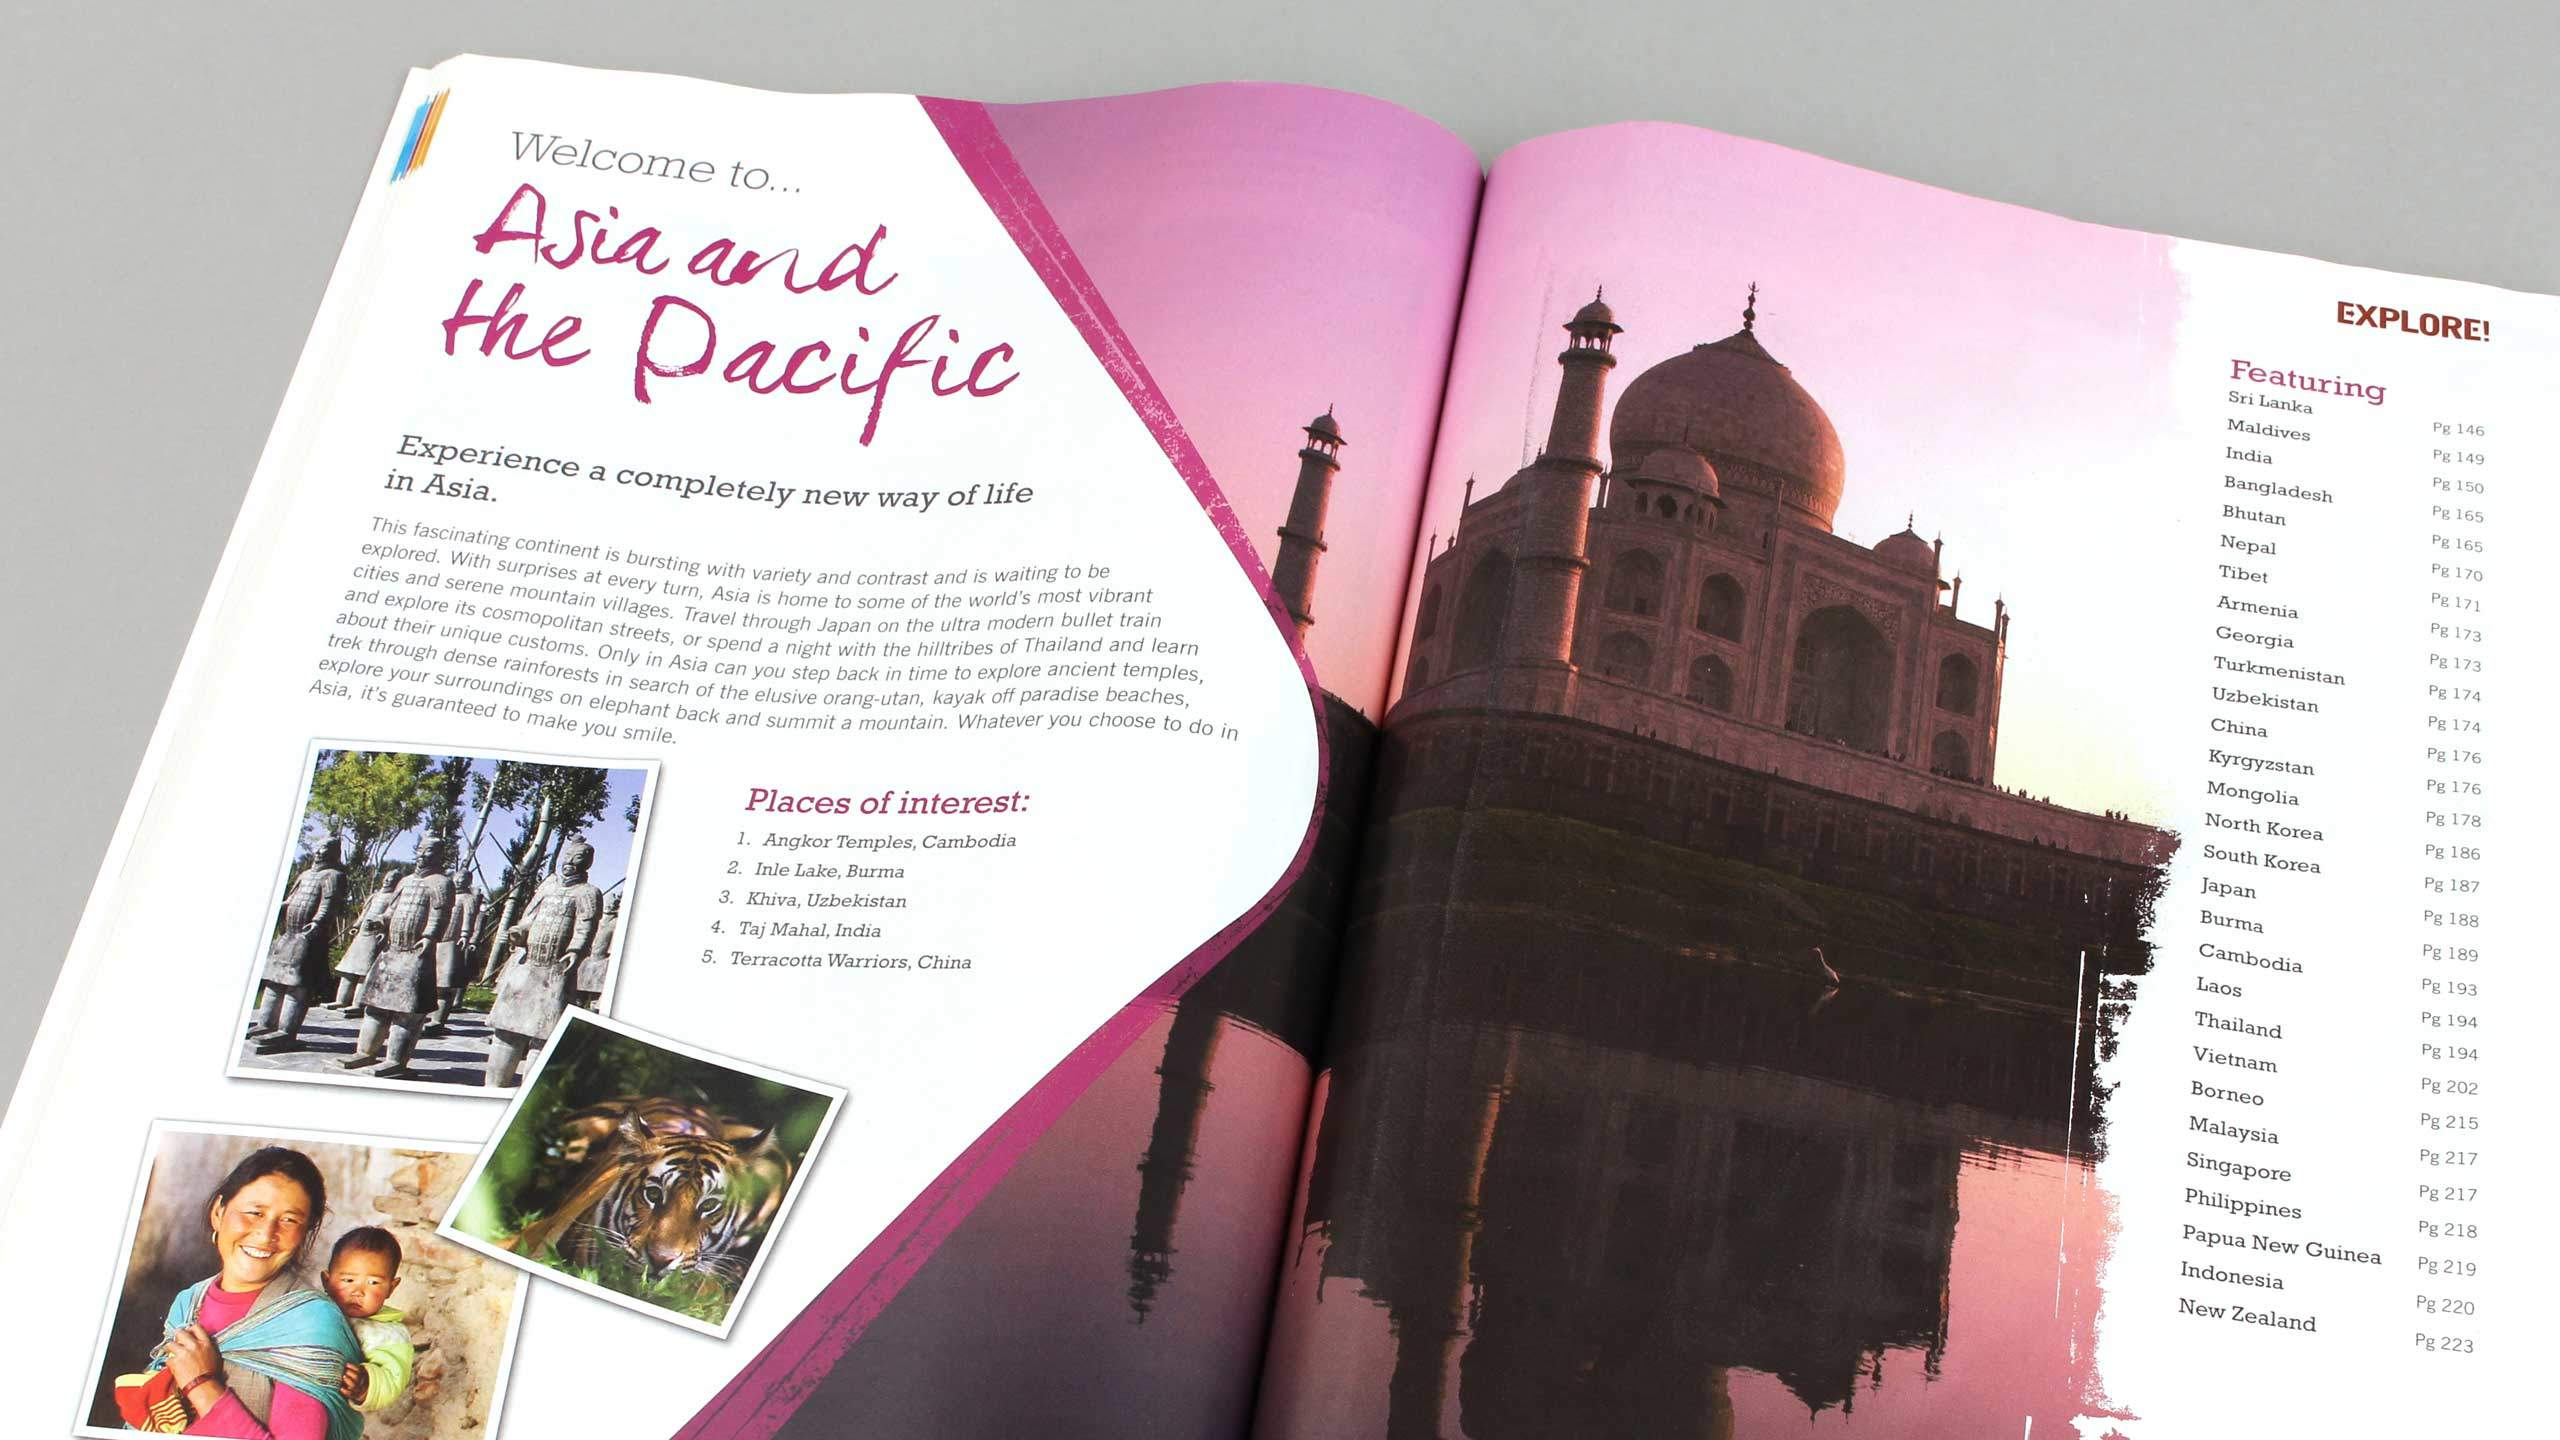 adventure travel brochure design asia pacific pages explore worldwide